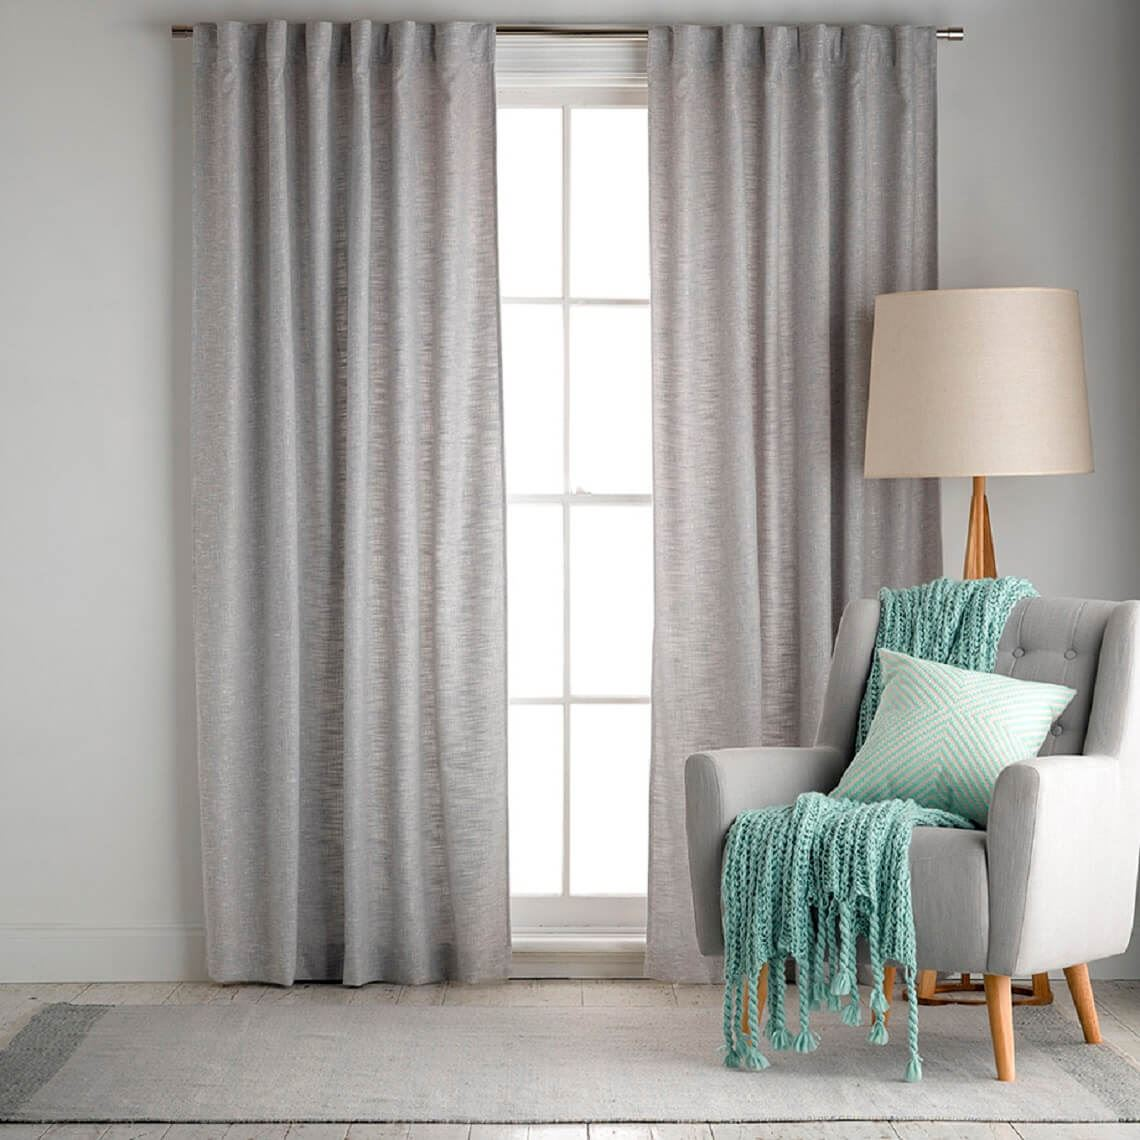 Clarence Lightfilter Concealed Tab Curtain Size W 140cm x D 1cm x H 230cm in Silver 100% Polyester Freedom by Freedom, a Curtains for sale on Style Sourcebook